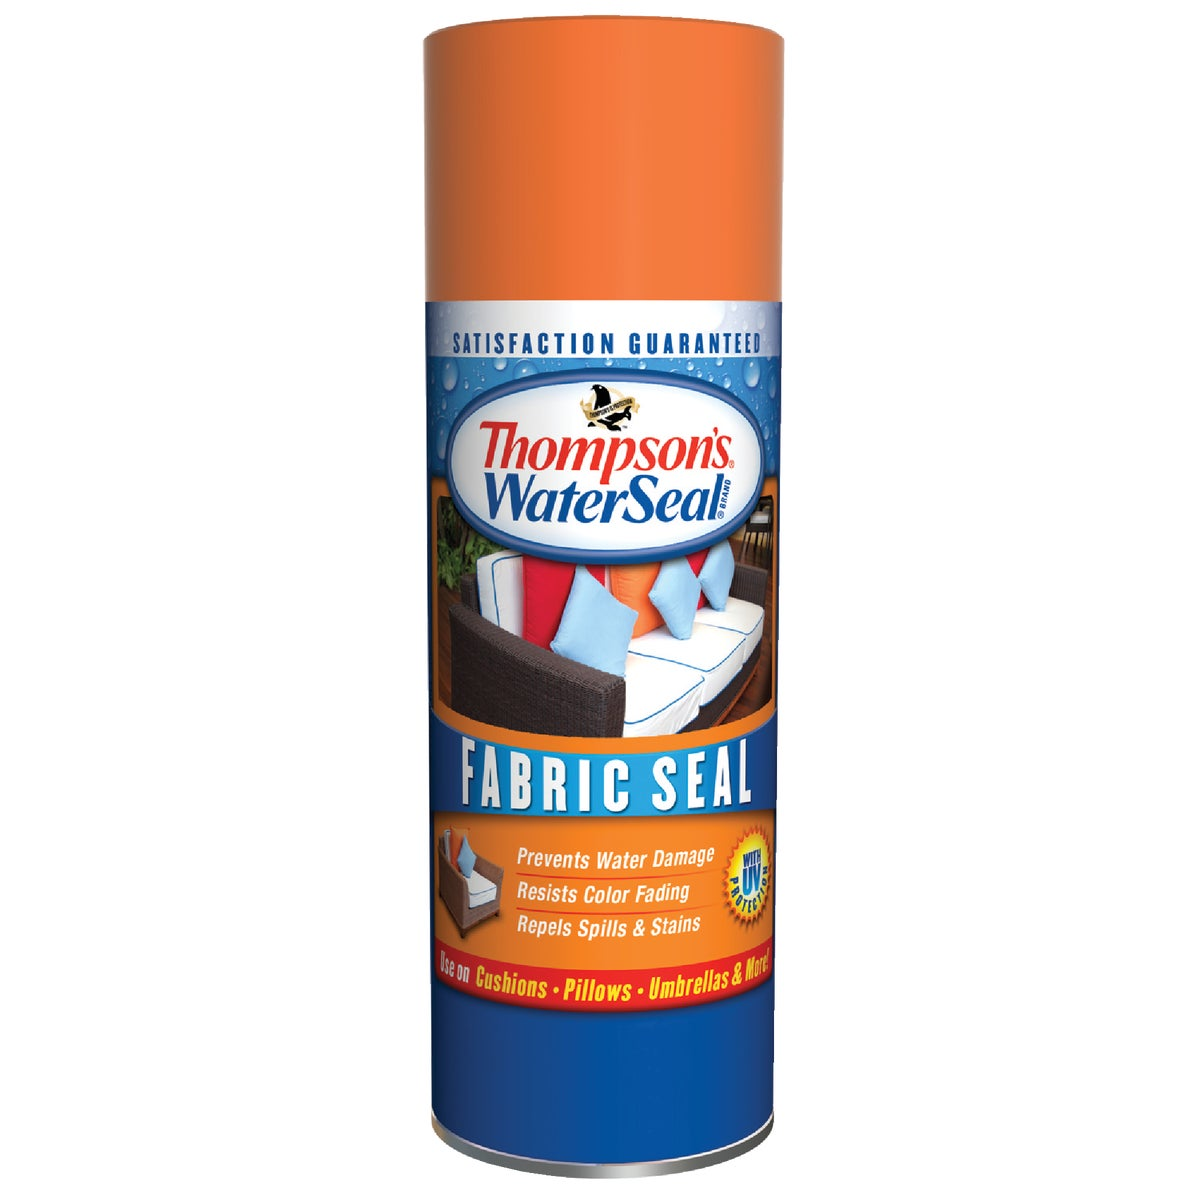 AEROSOL FABRIC SEAL - TH.010502-18 by Thompsons